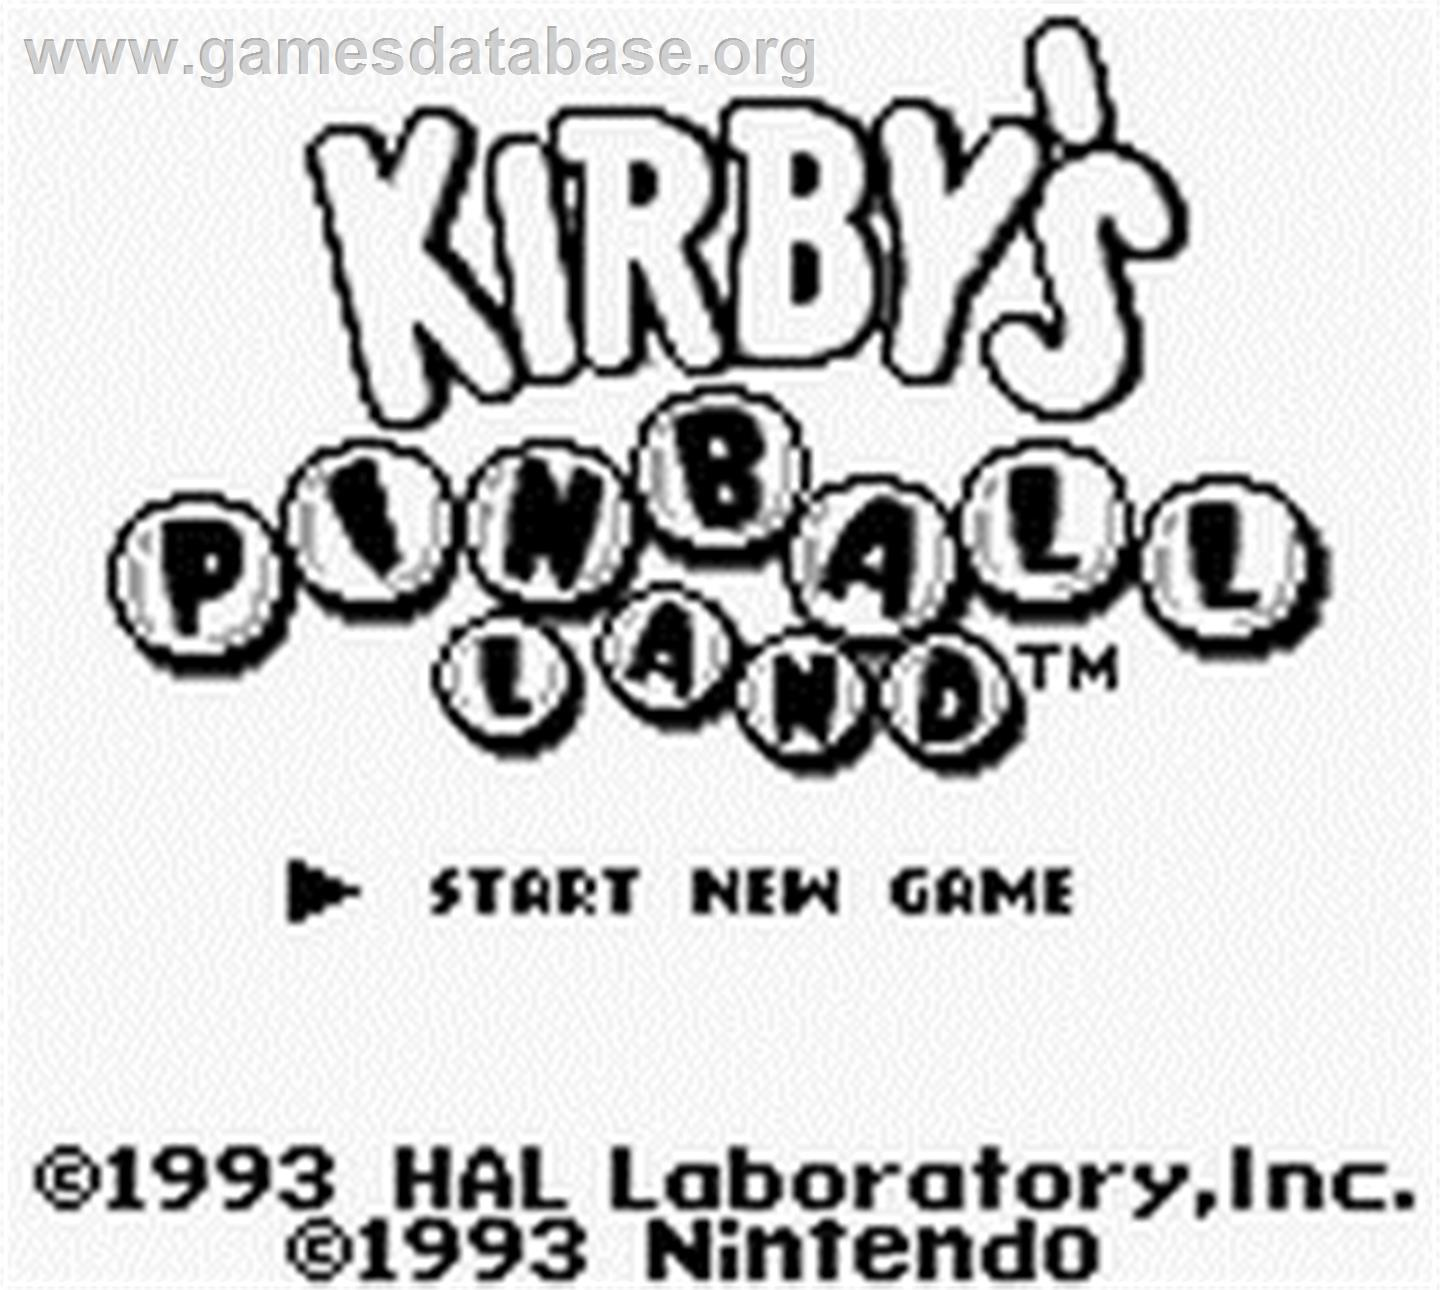 Kirbys Pinball Land in addition Guide schematicsnew further Cmod Subotron Una Fuente Llena De Pixeles further Multi Game Doctor 2 additionally Dir Kids Baby furniture And Decorations children S Bookcase 0107368. on game boy cartridge